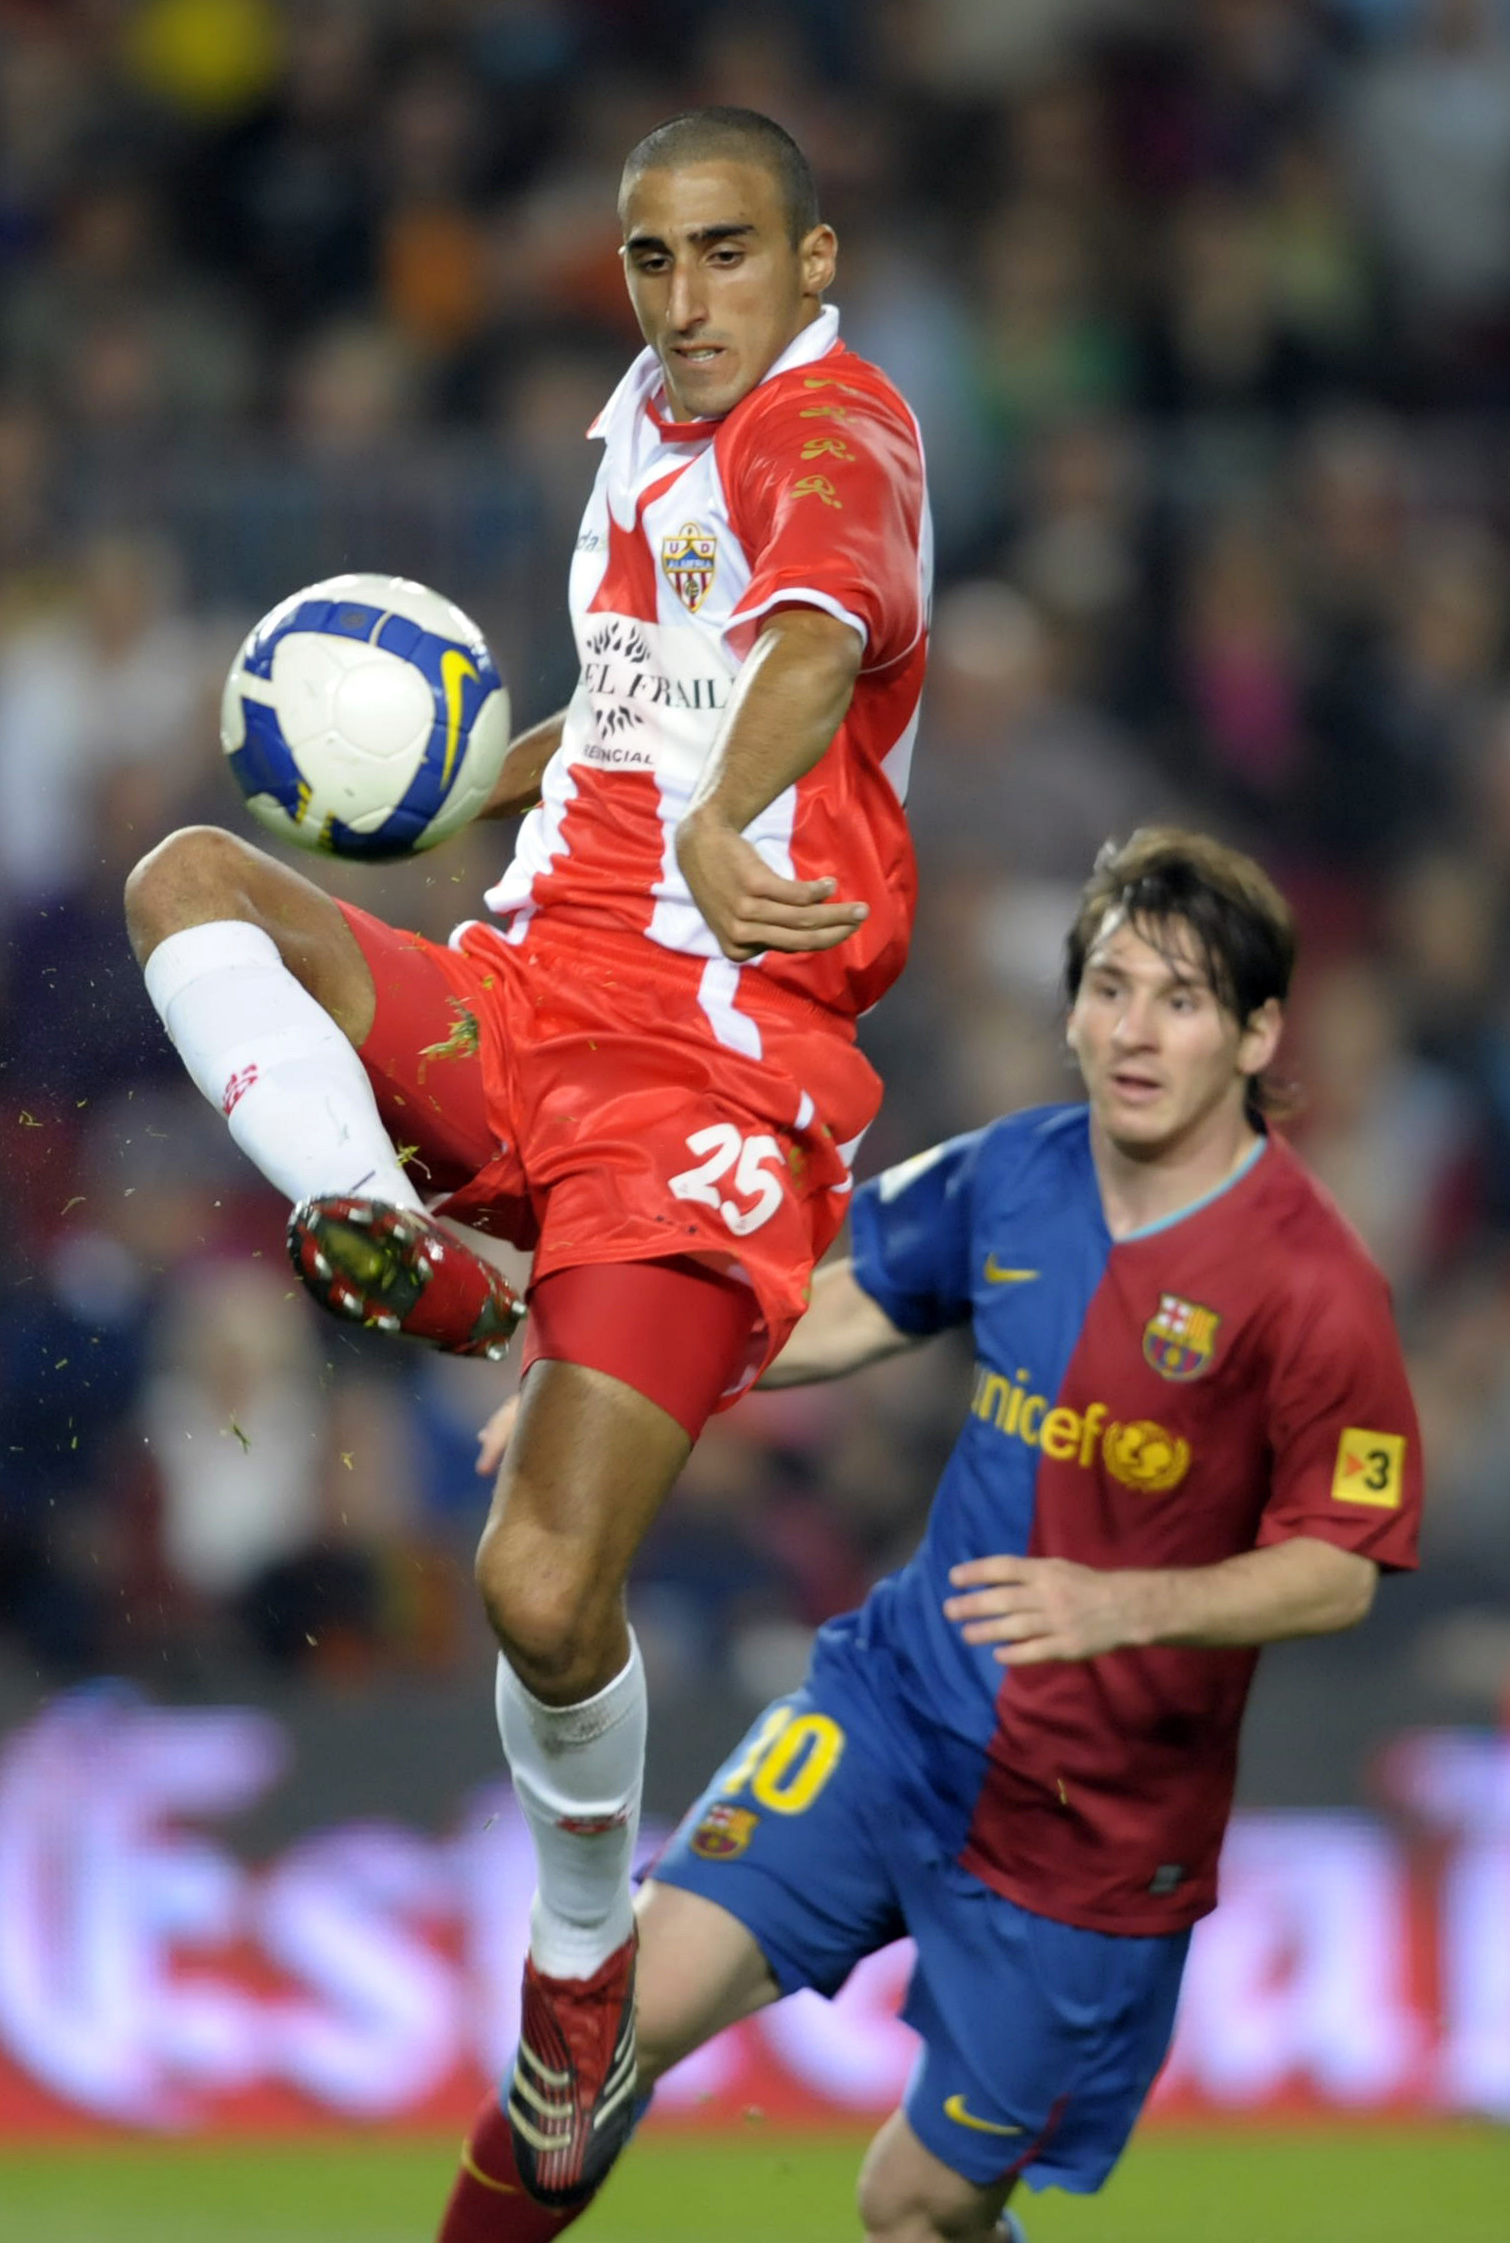 Barcelona's Lionel Messi, from Argentina, right, duels for the ball with Almeria's Hernan Dario during their Spanish league soccer match at Camp Nou S...